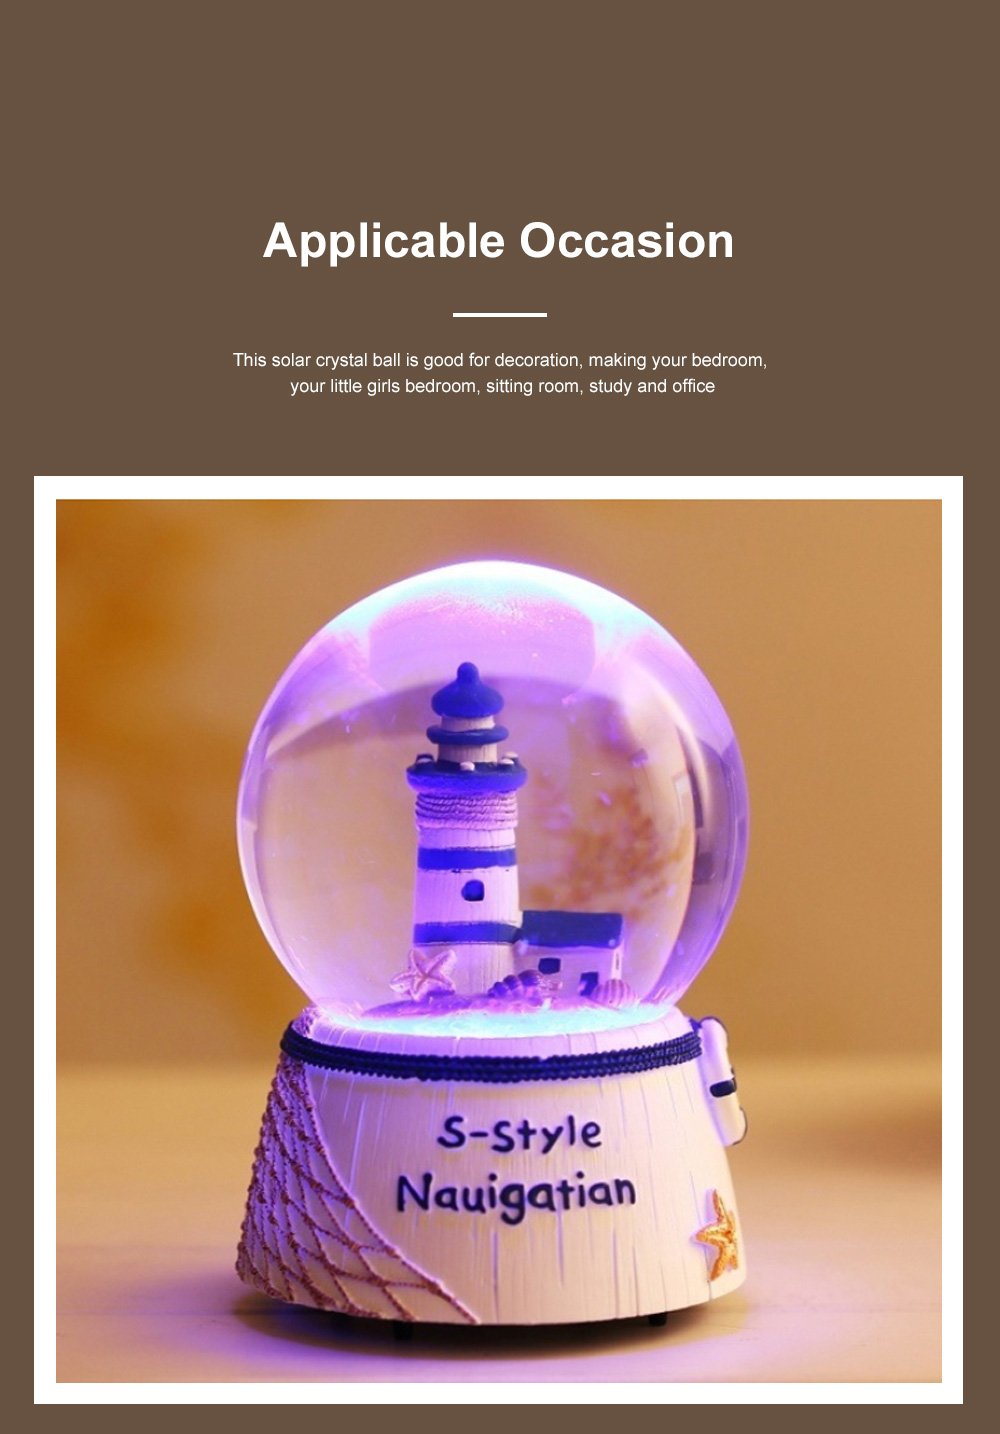 Mini Sailing Lighthouse Crystal Ball LED Base 3D Crystal Ball Night Light with Stand 5 Colors Change for Kids Baby Bedroom Decor Birthday Gift Snow Global Musical Box 4